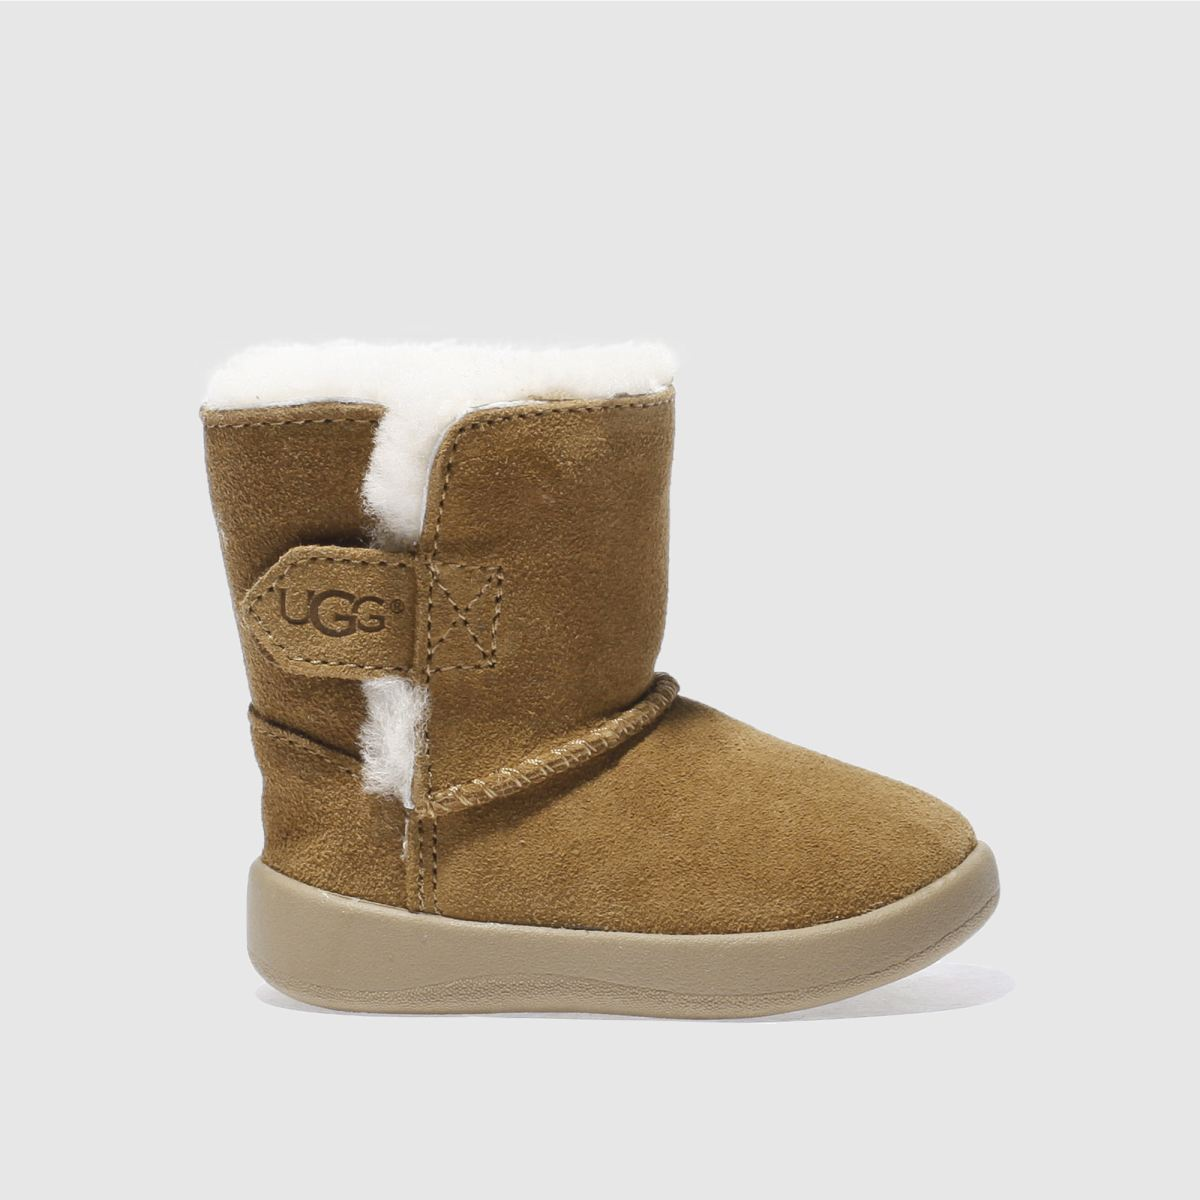 Ugg Tan Keelan Crib Shoes Baby